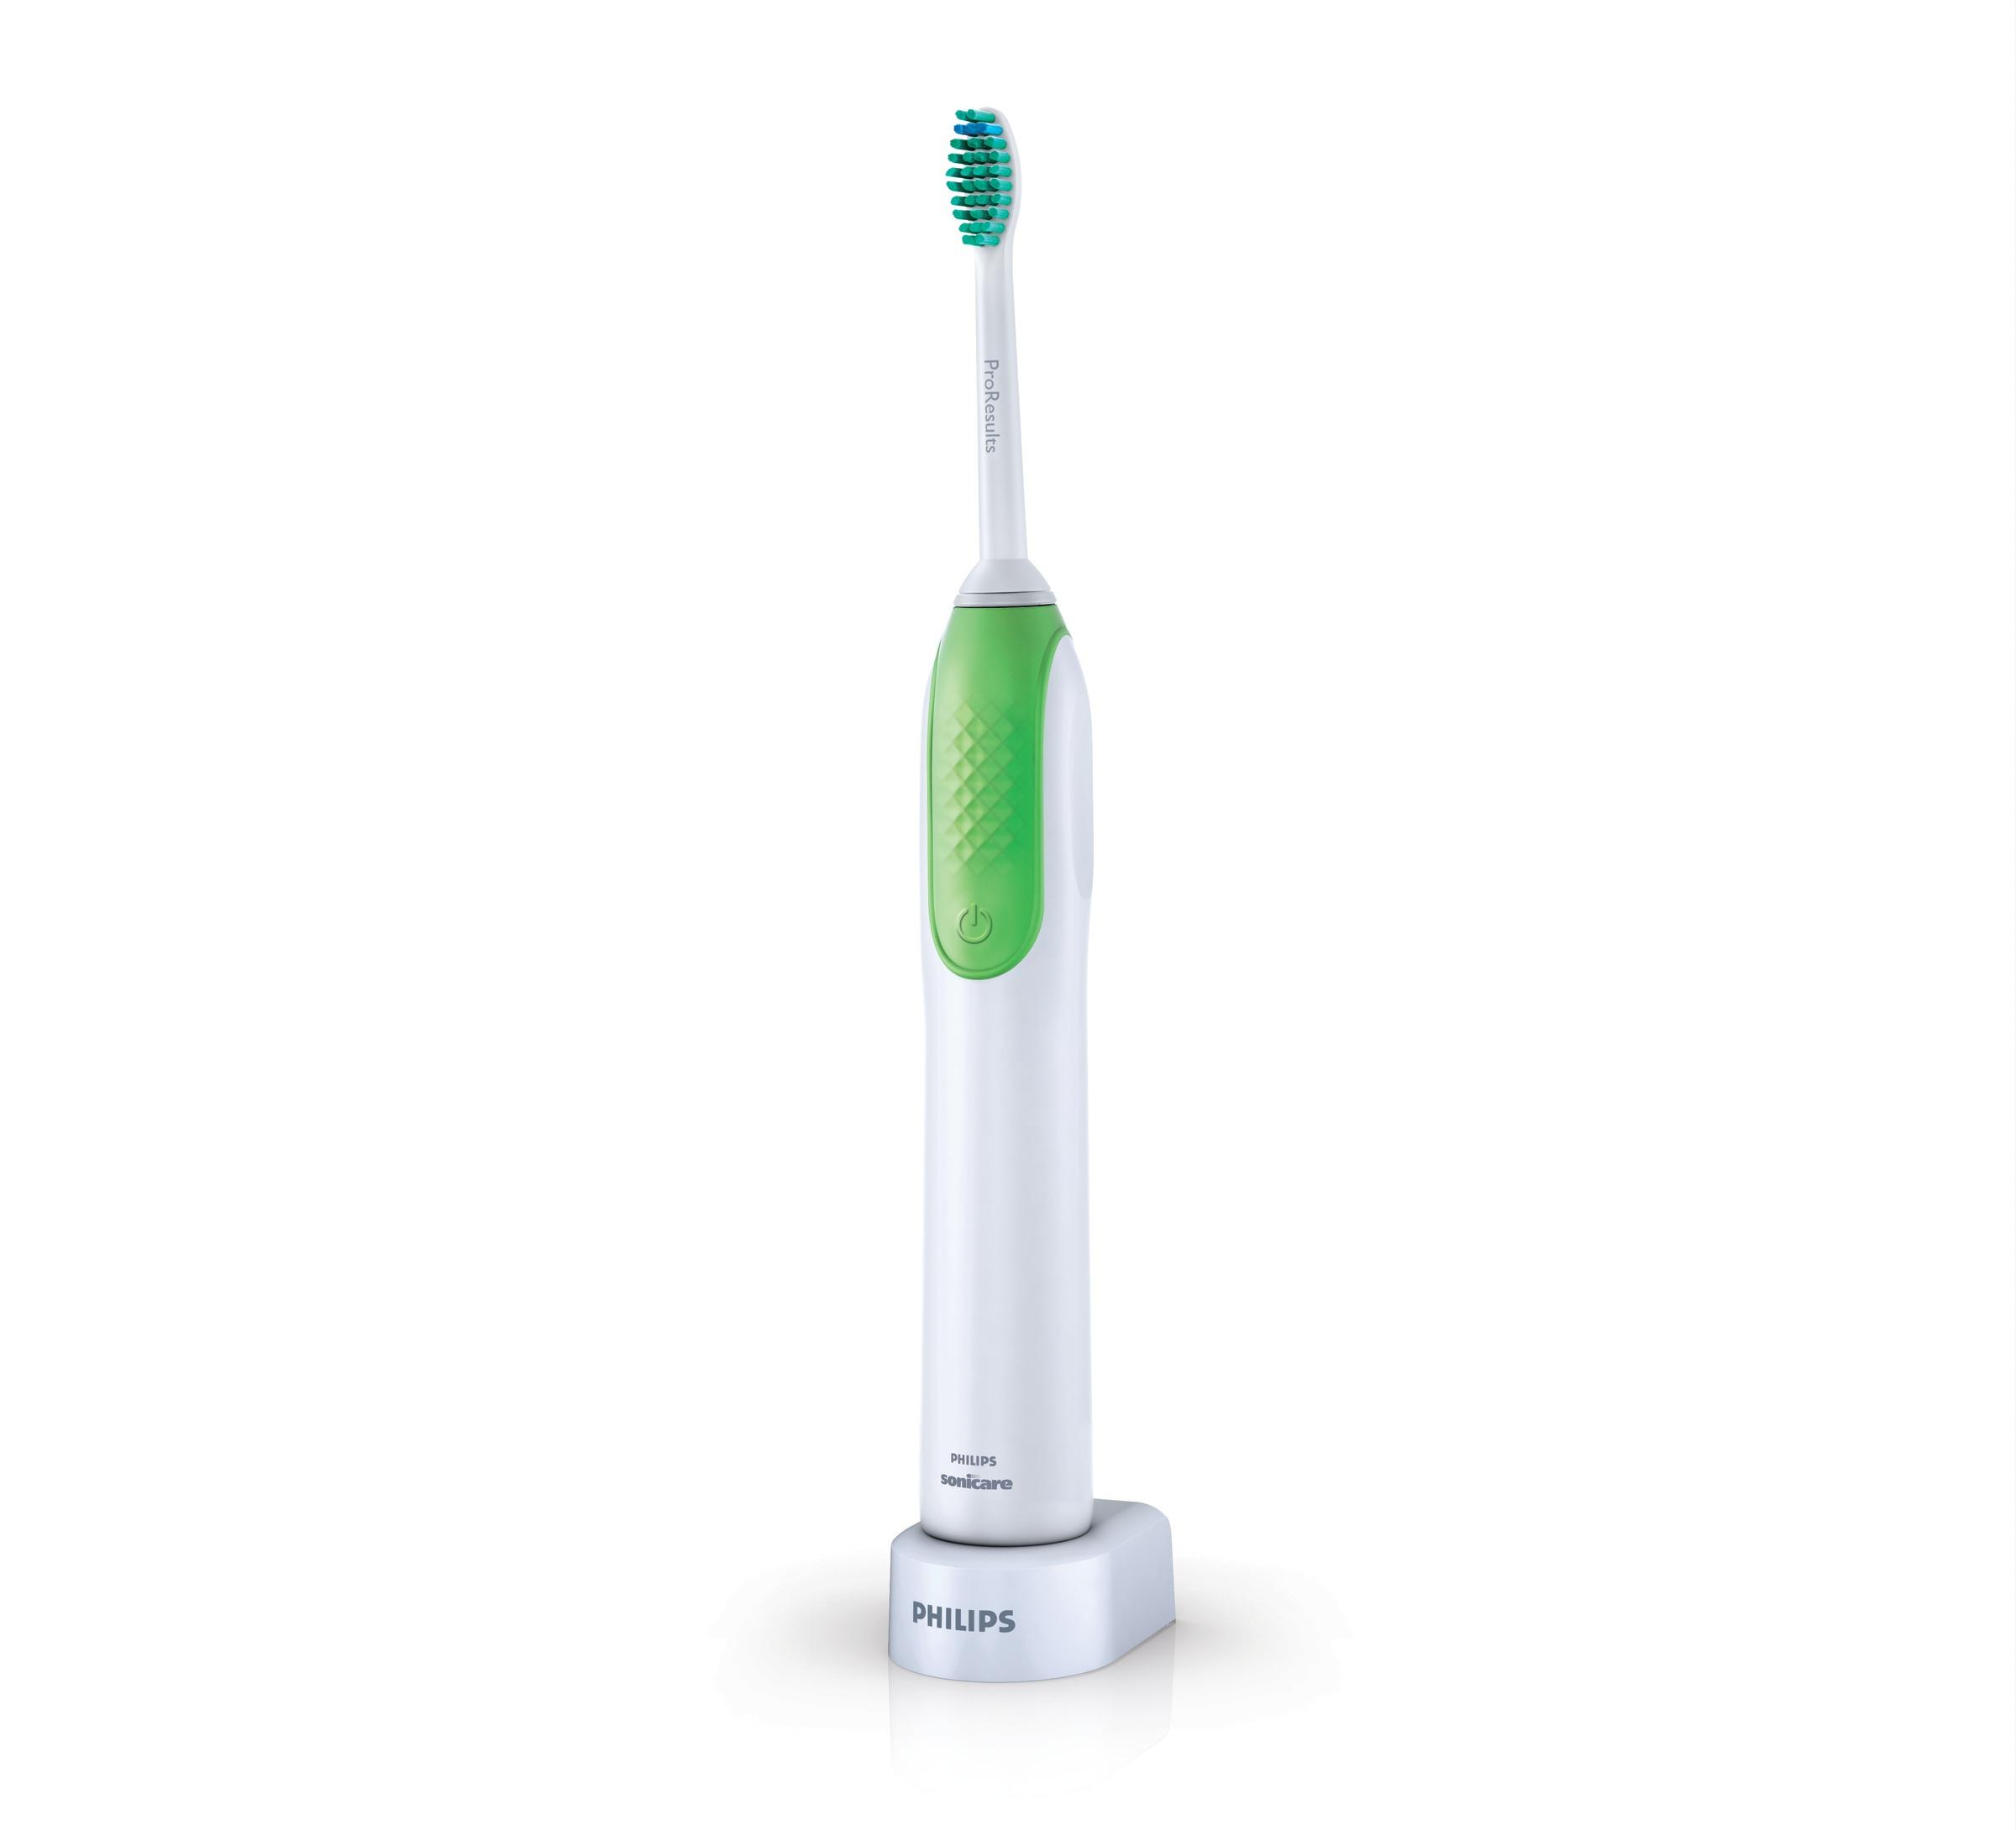 philips sonicare recharcheable toothbrush electric. Black Bedroom Furniture Sets. Home Design Ideas